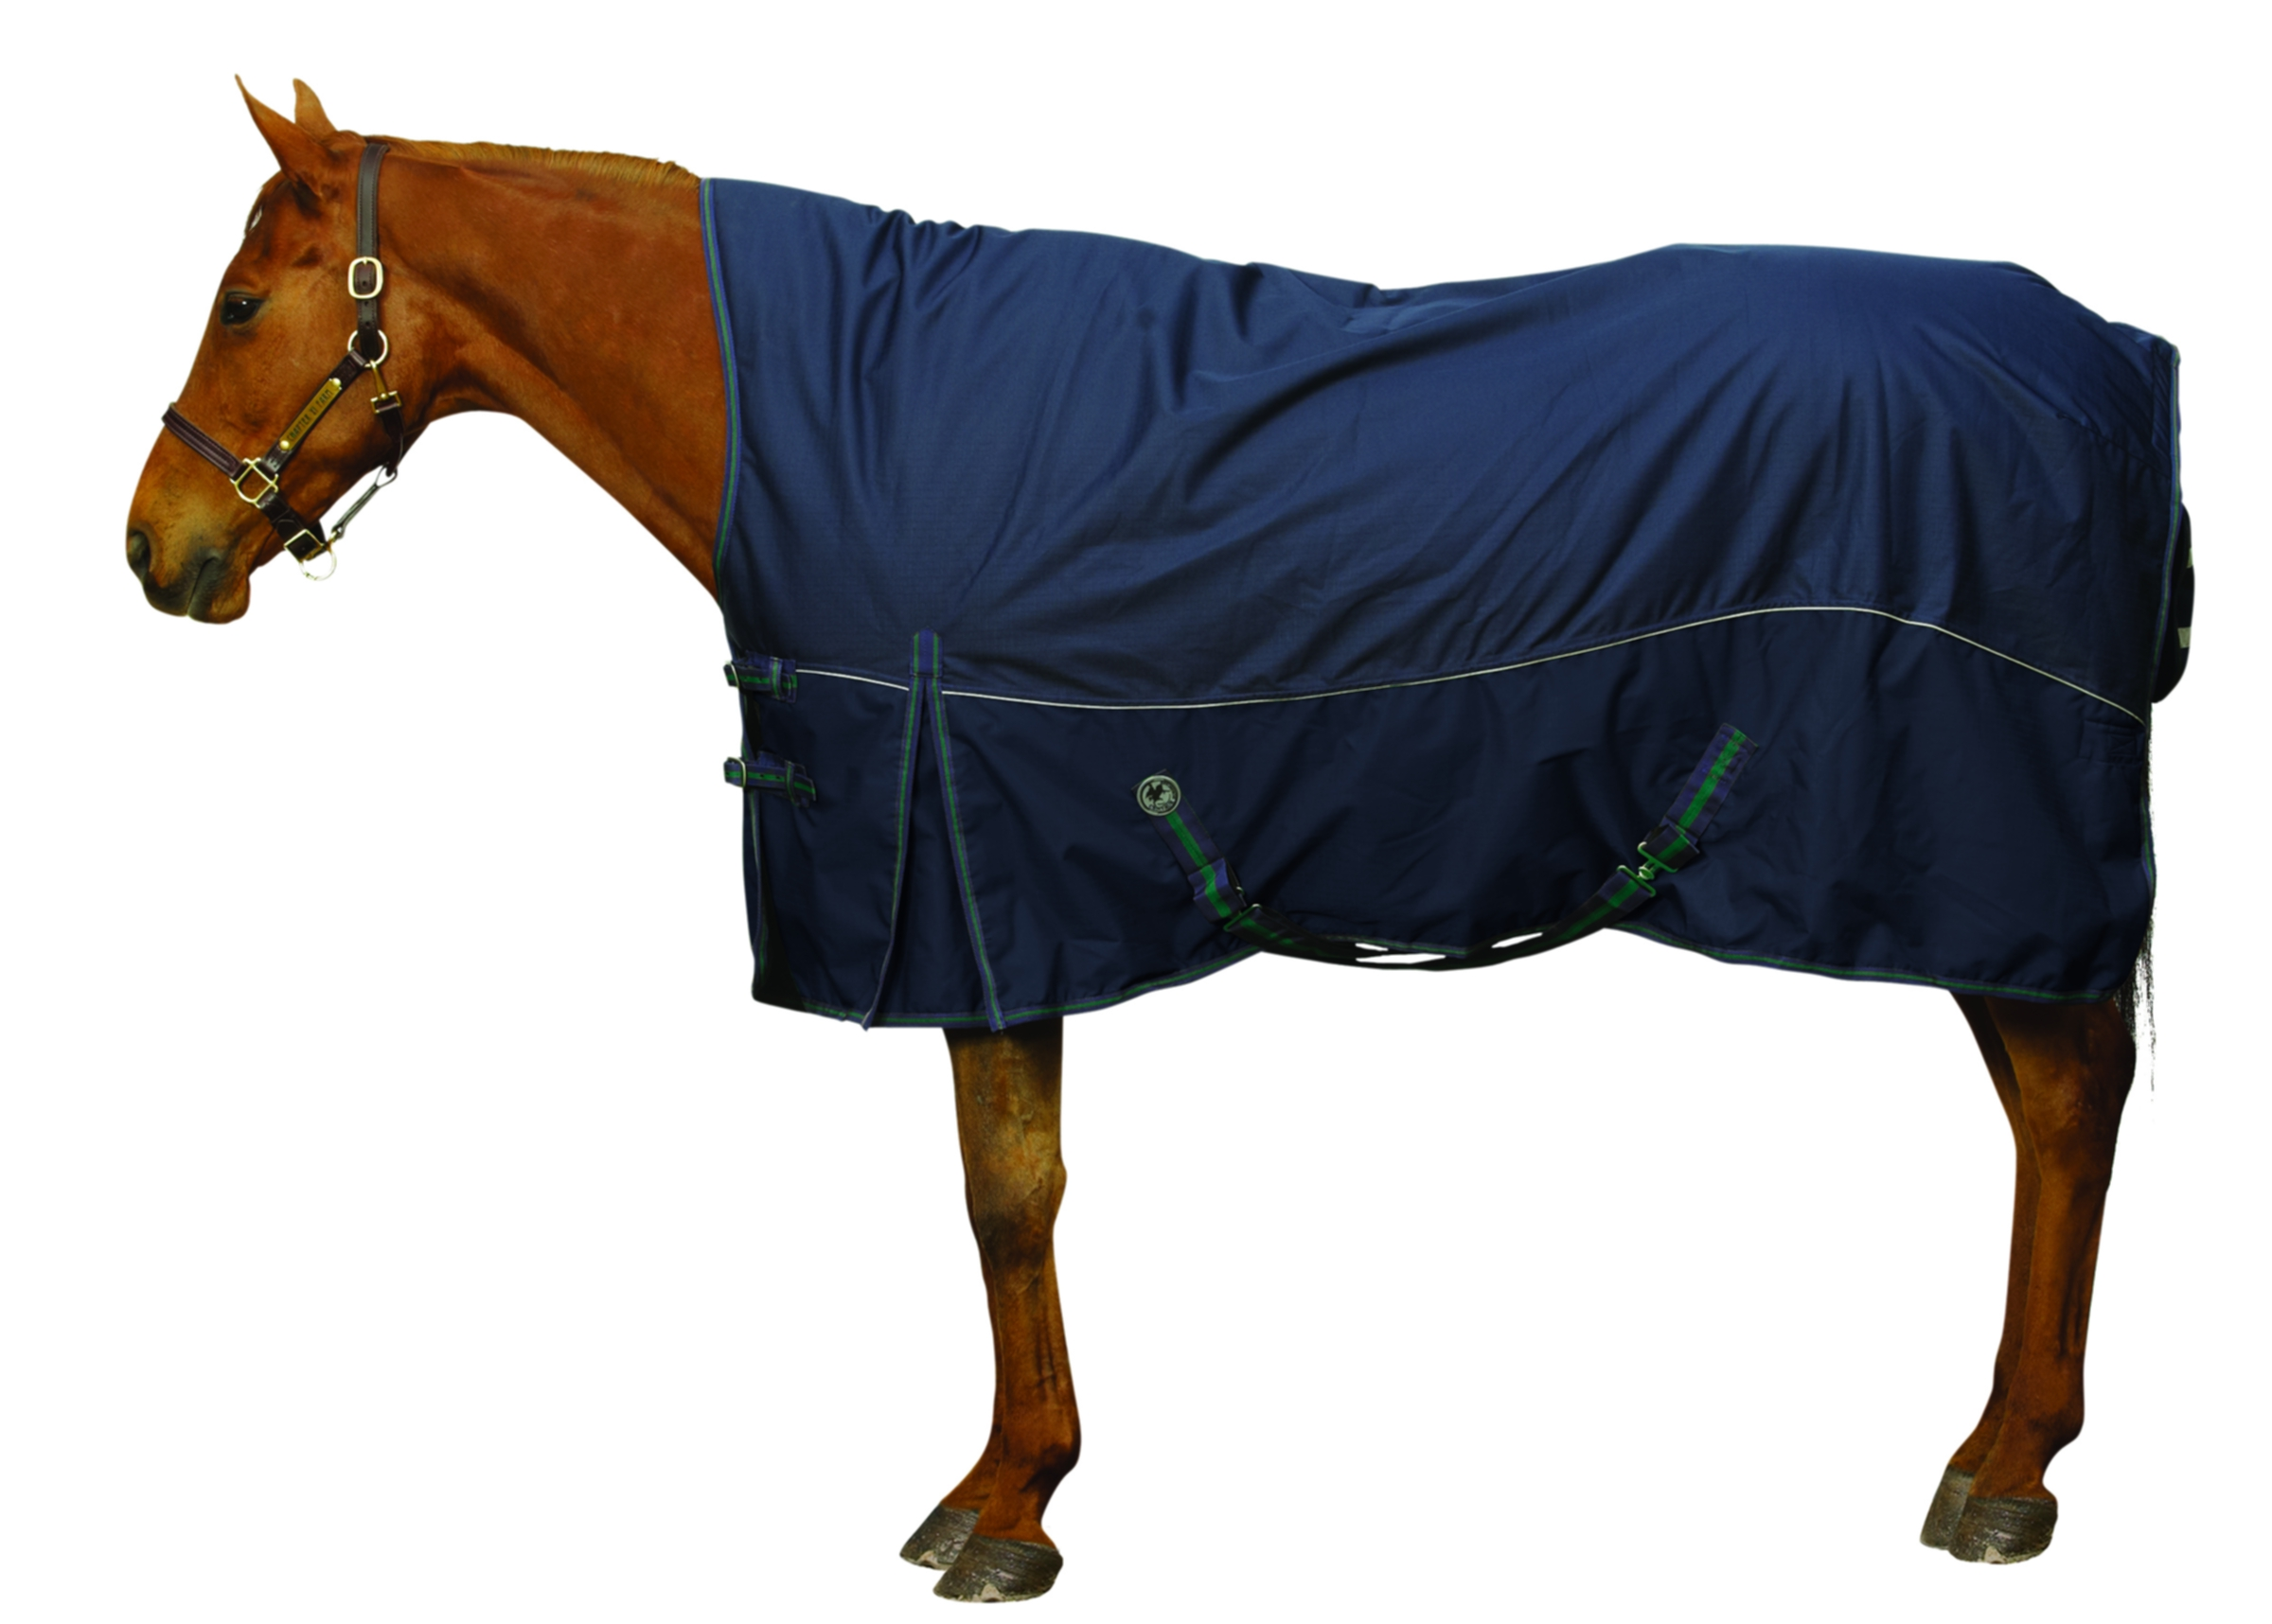 Centaur Midneck 600D Waterproof / Breathable Blanket